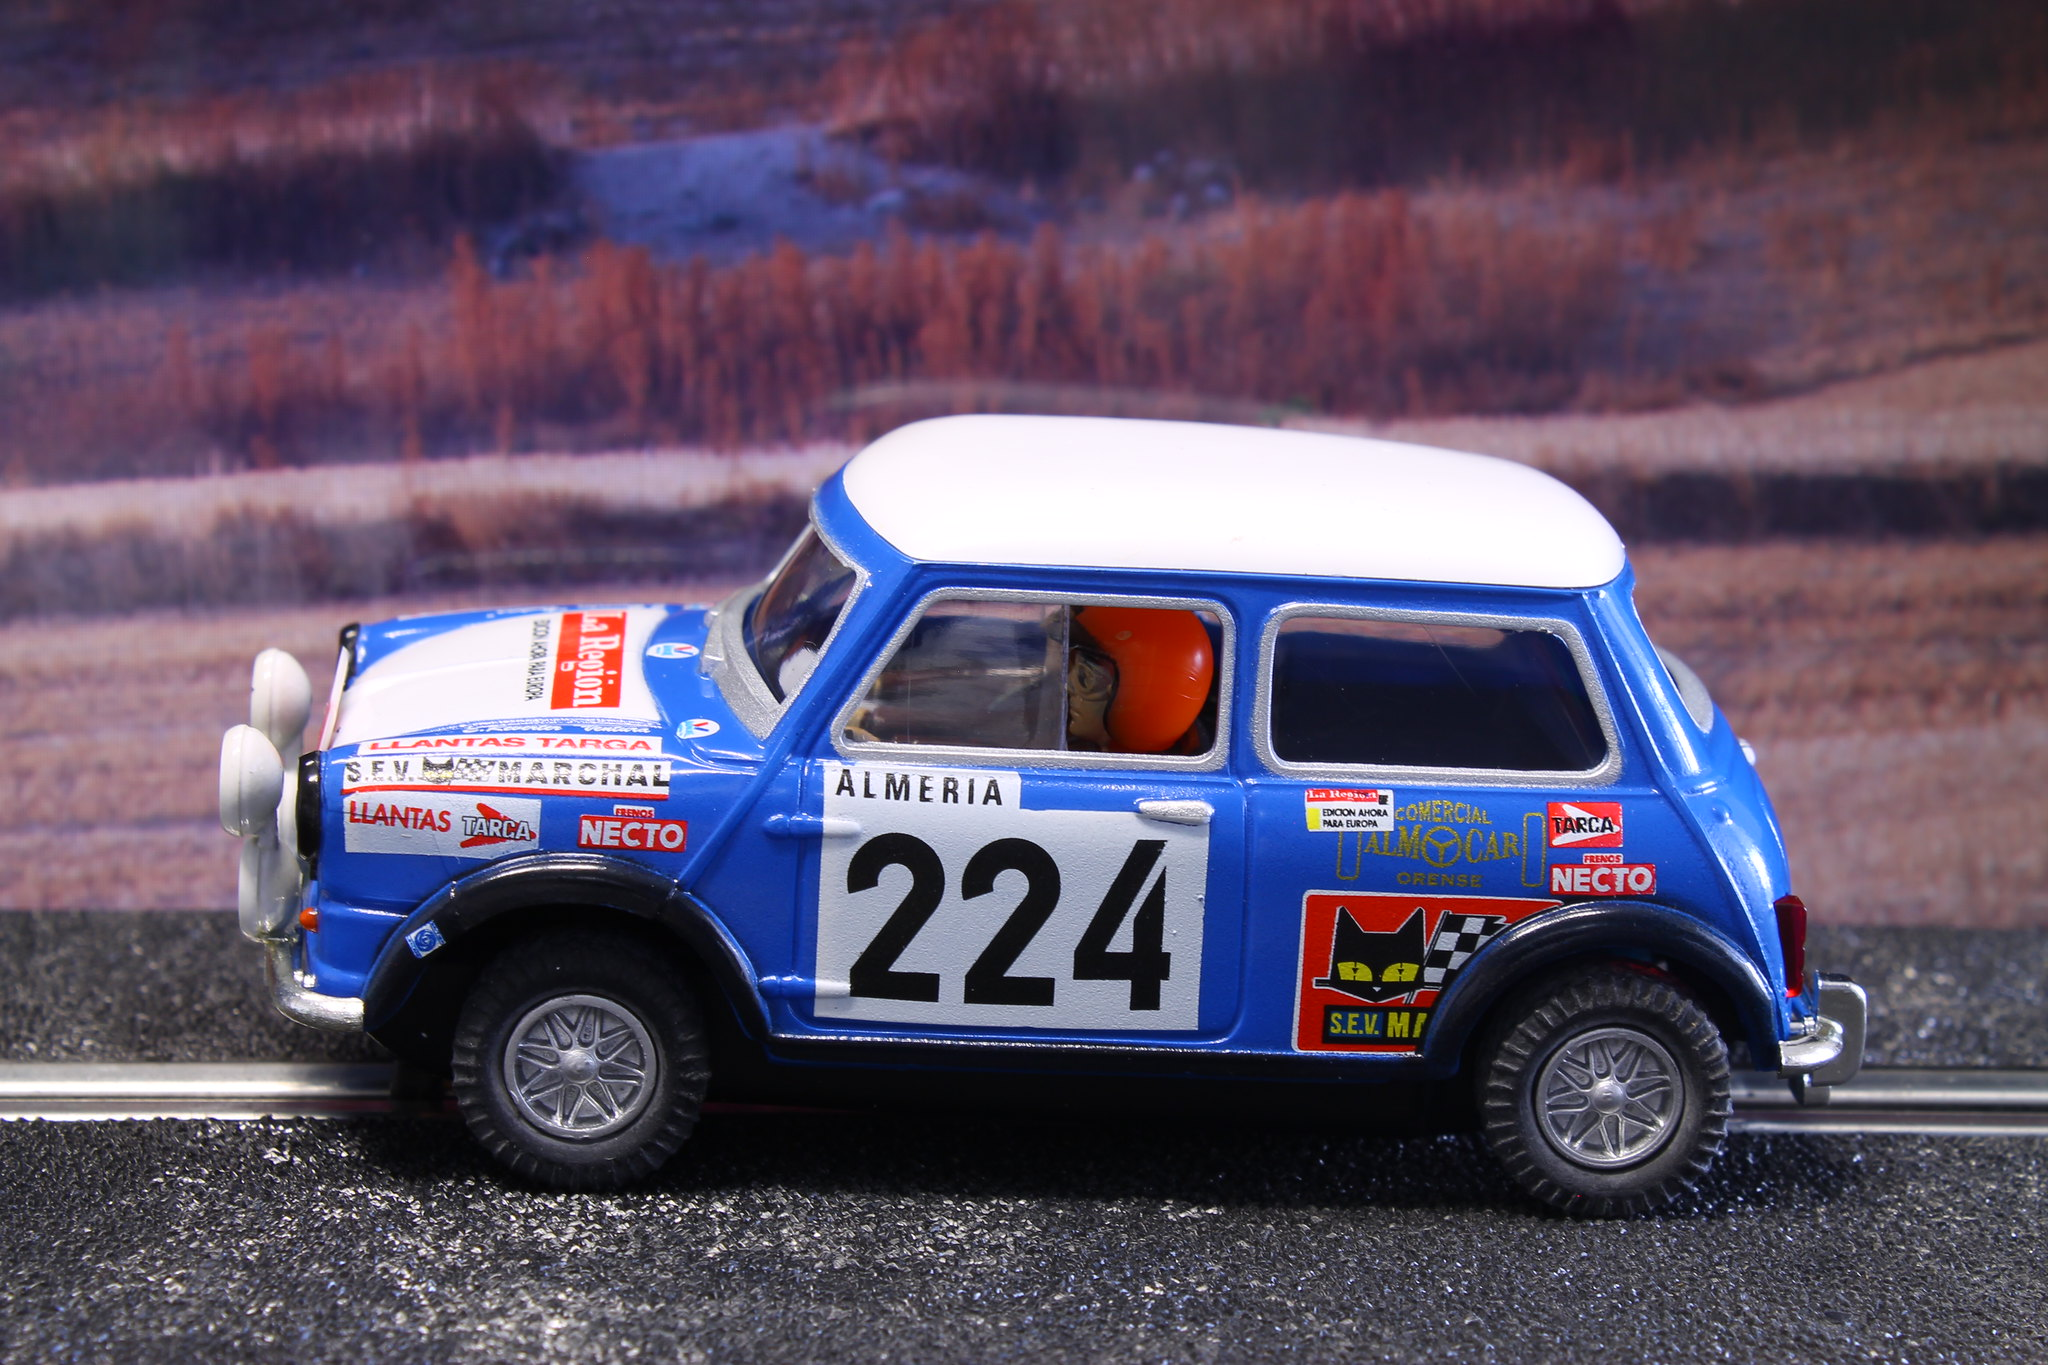 authi mini 1275 estanislao reverter rally de monte carlo 1973 ukloma slot cars blog. Black Bedroom Furniture Sets. Home Design Ideas